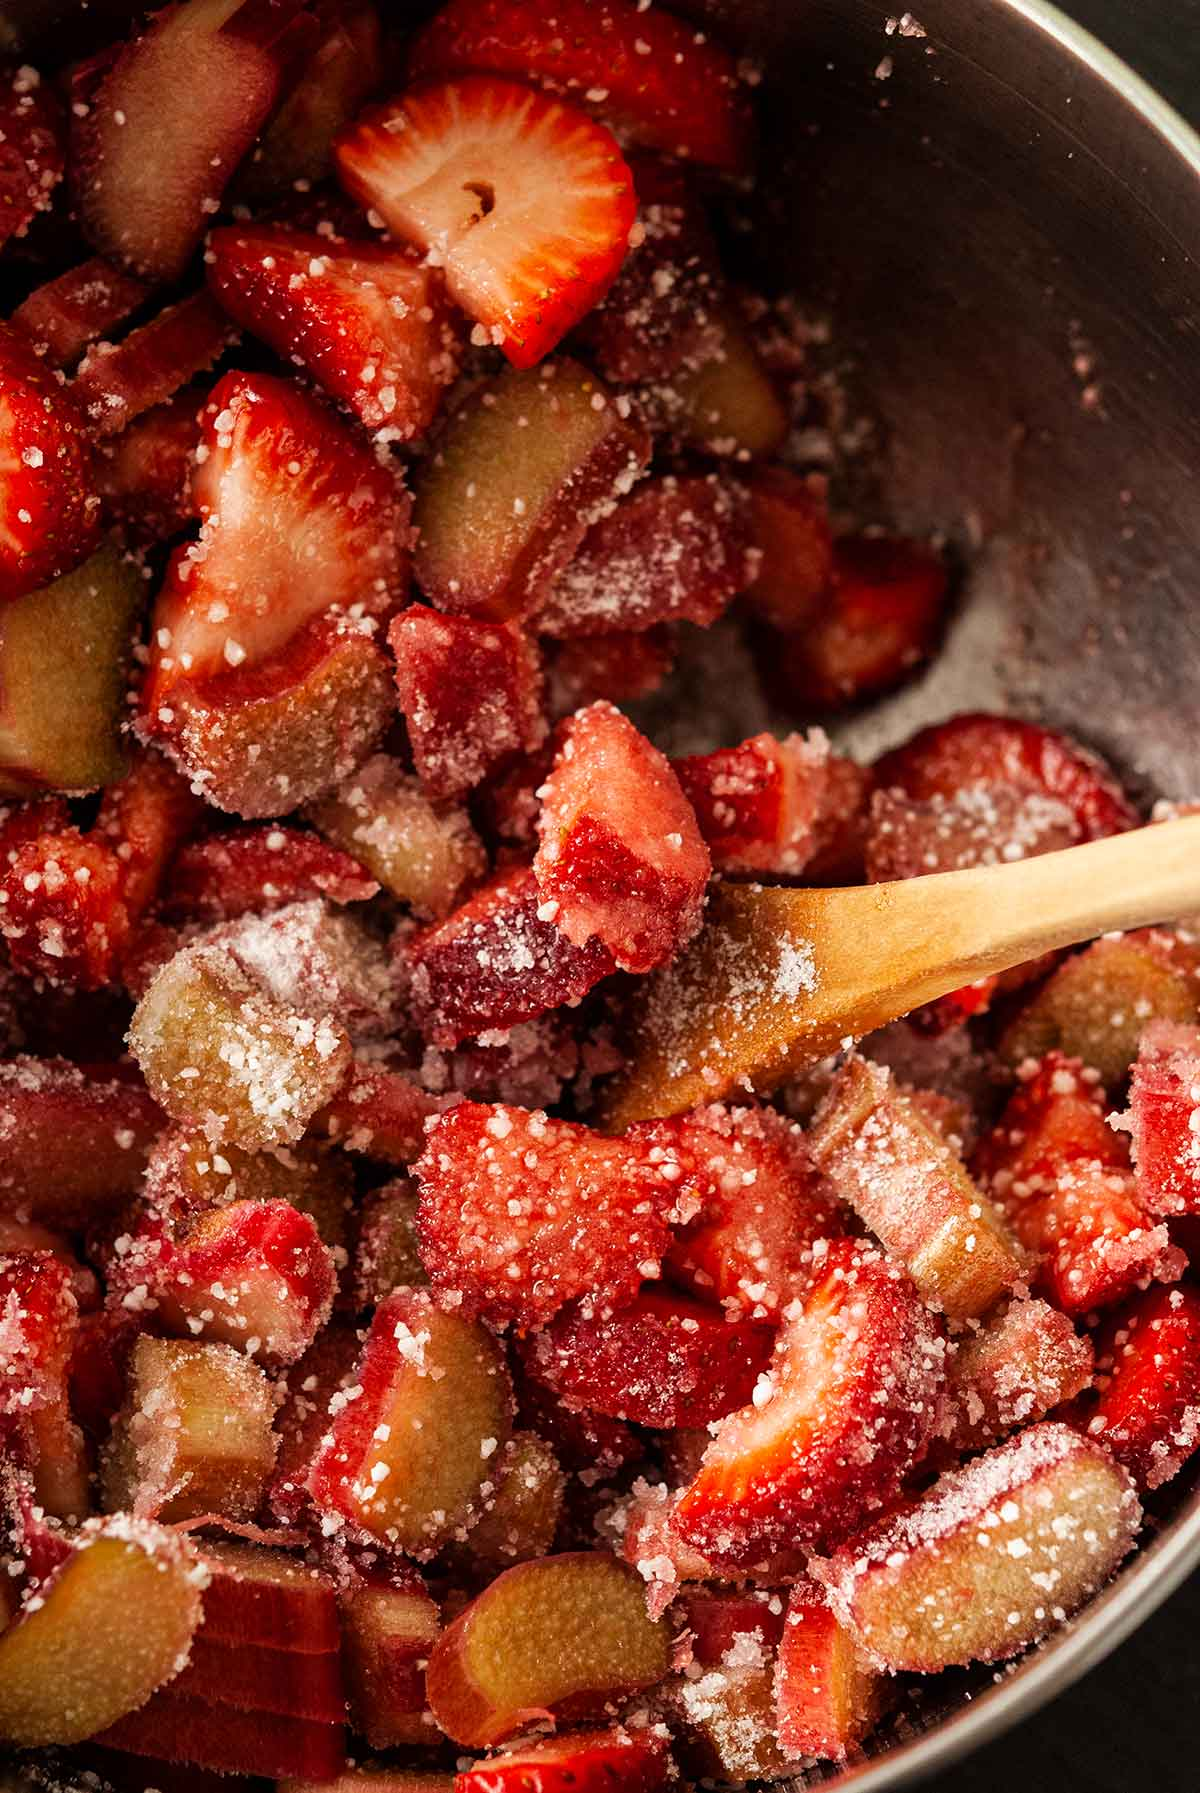 Raw strawberries and rhubarb in a mixing bowl with sugar and tapioca and a spoon.